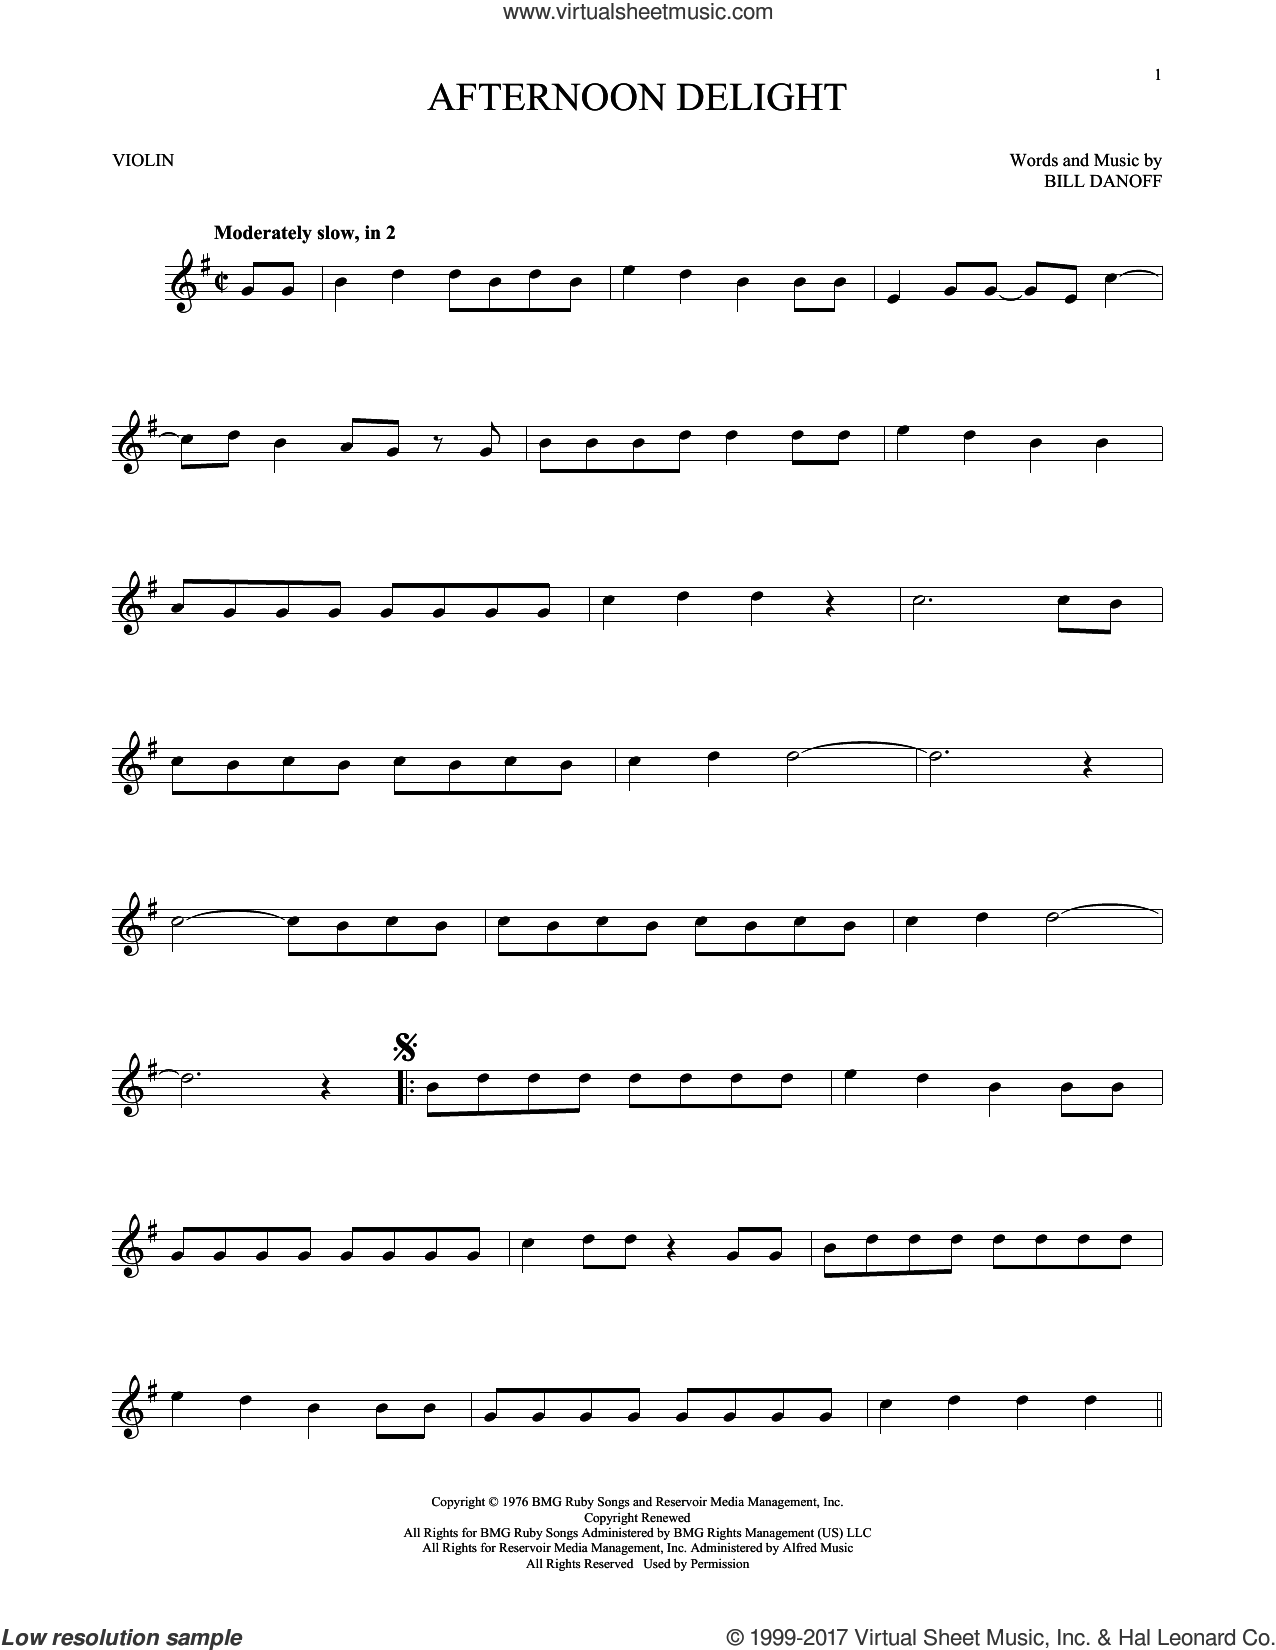 Afternoon Delight sheet music for violin solo by Starland Vocal Band and Bill Danoff, intermediate skill level